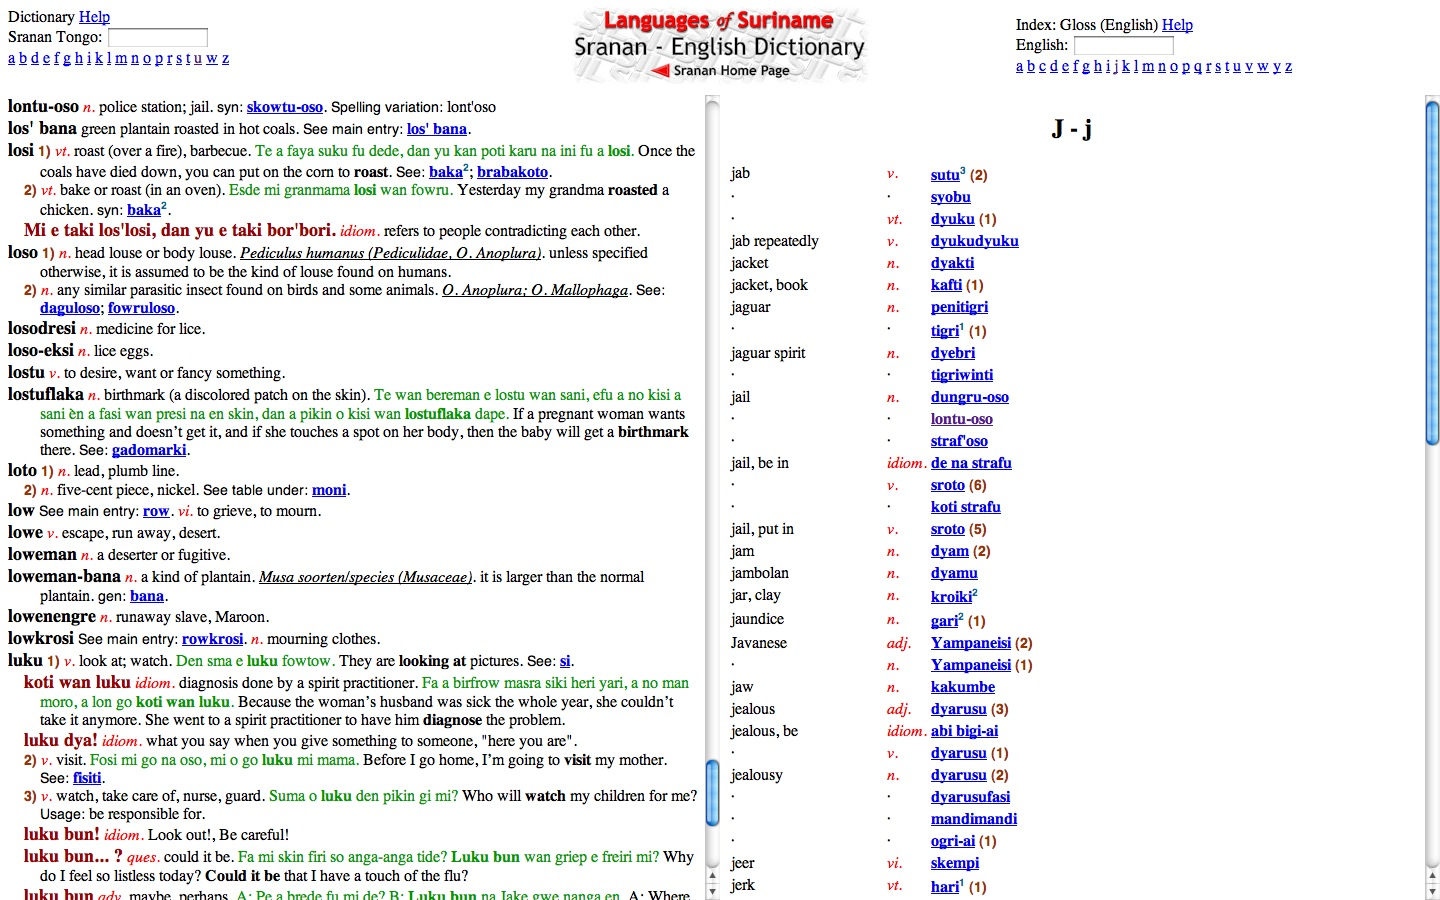 Screenshot of Suranan - English Dictionary